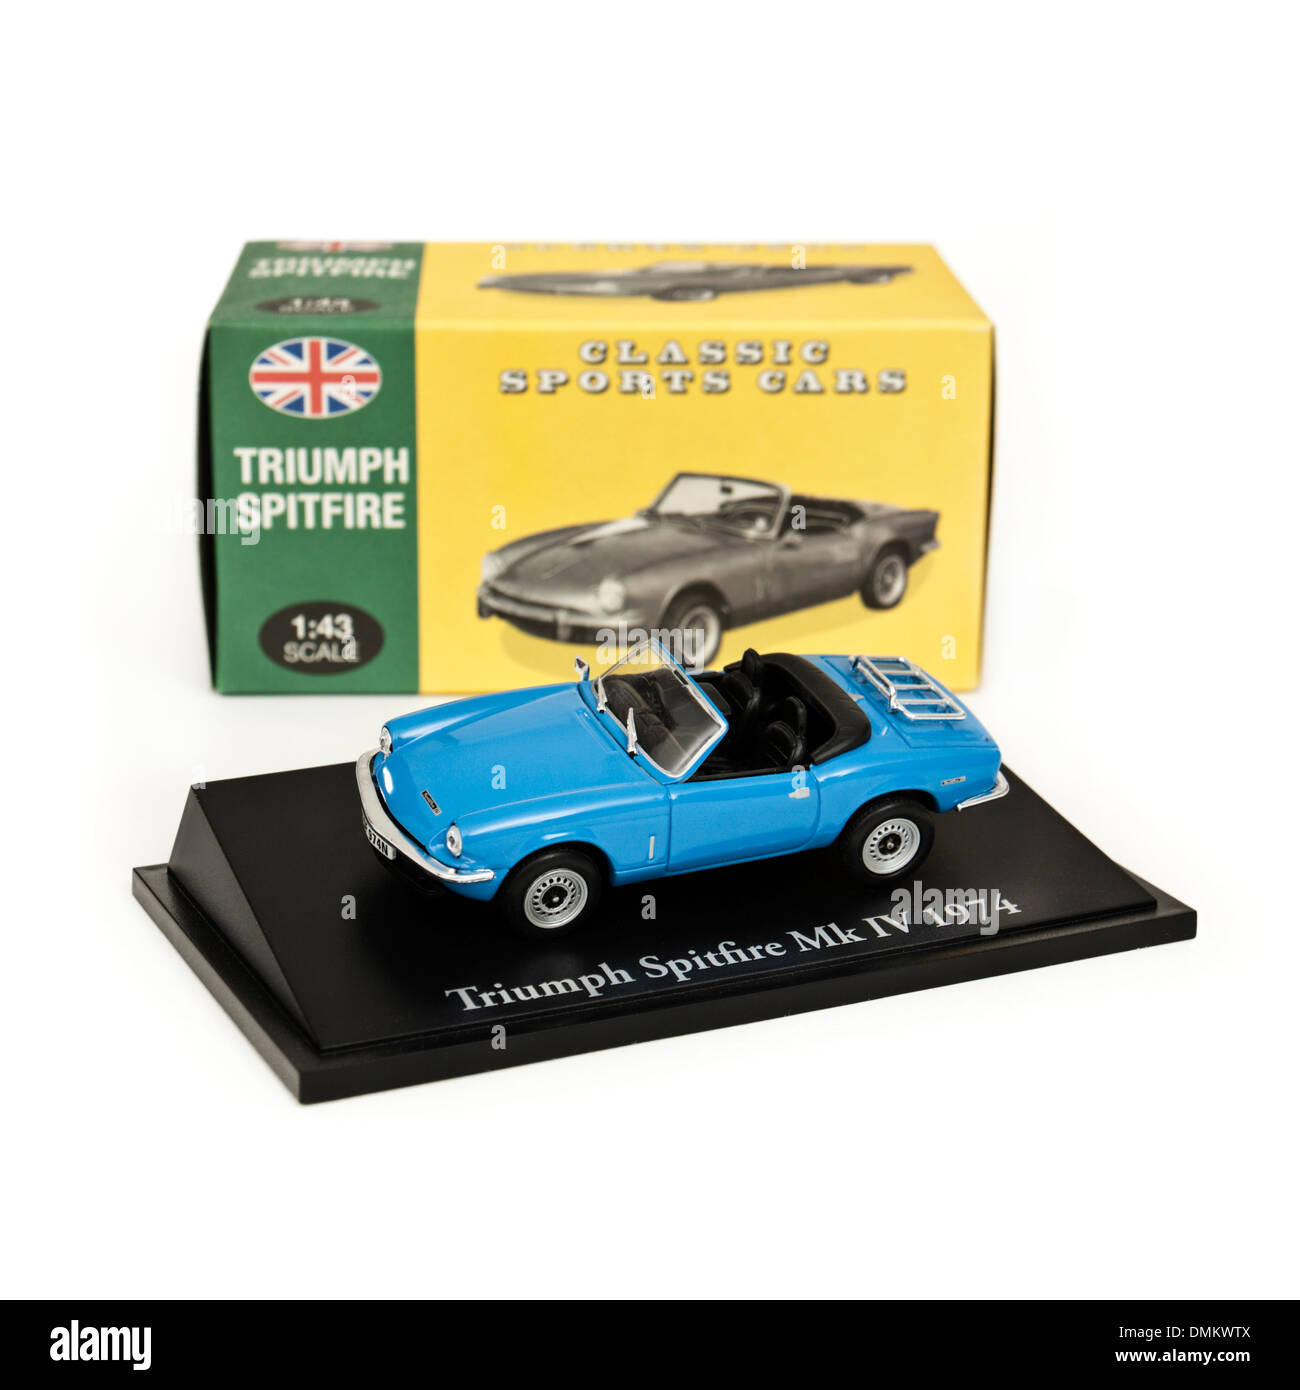 1:43 scale replica of the 1974 Triumph Spitfire Mk IV convertible sports car by Atlas Editions - Stock Image